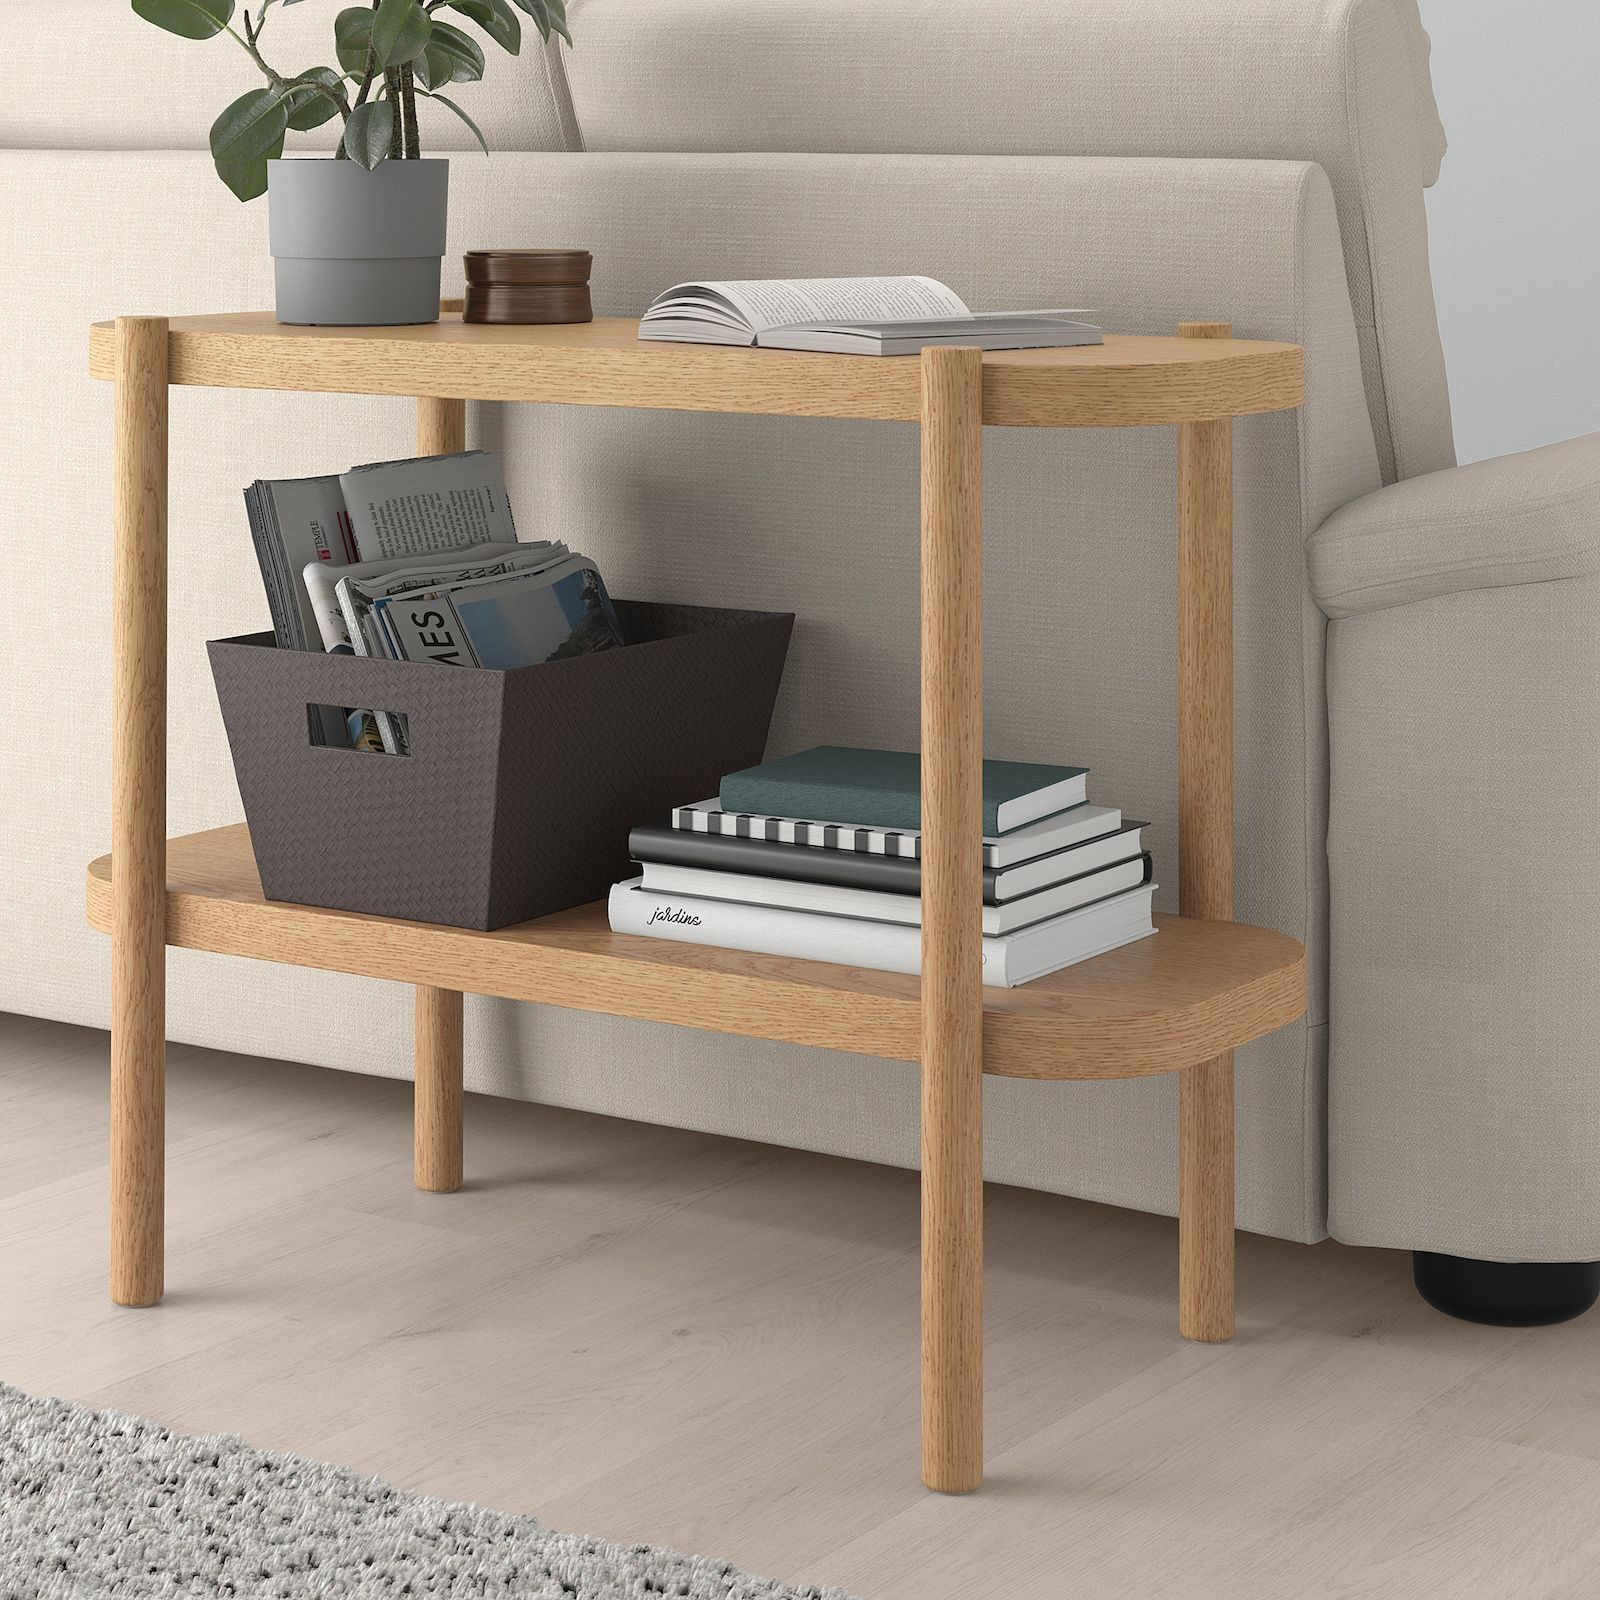 Listerby Console Table White Stained Oak 36 1 4x15x28 Ikea In 2021 Console Table Bed Frame With Storage Solid Oak Table [ 1600 x 1600 Pixel ]